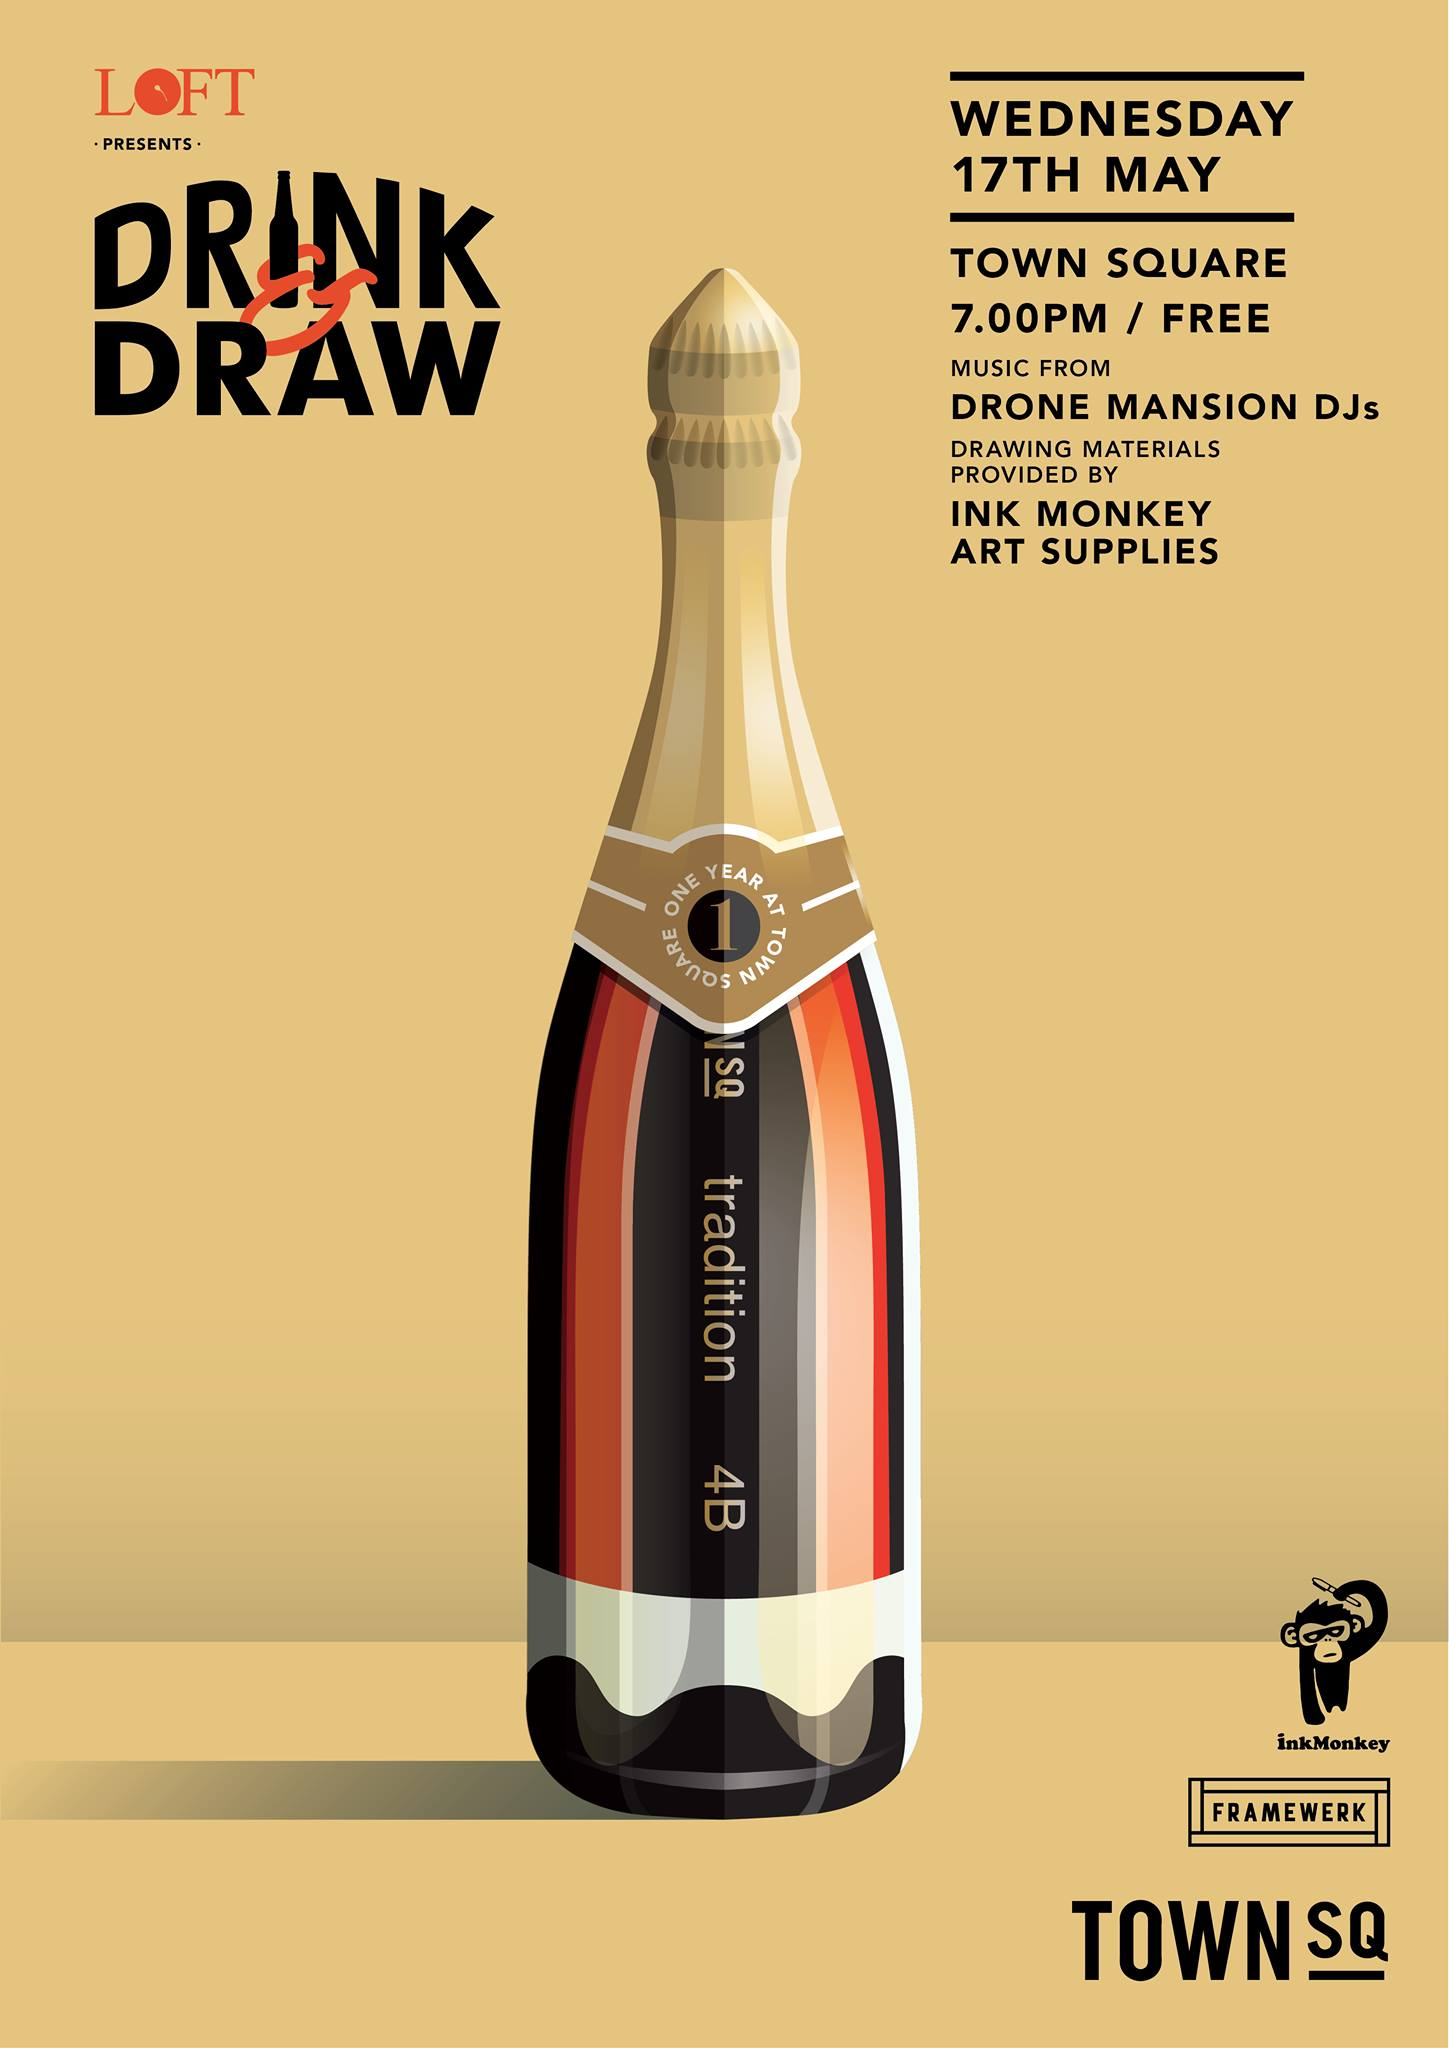 Drink & Draw by LOFT